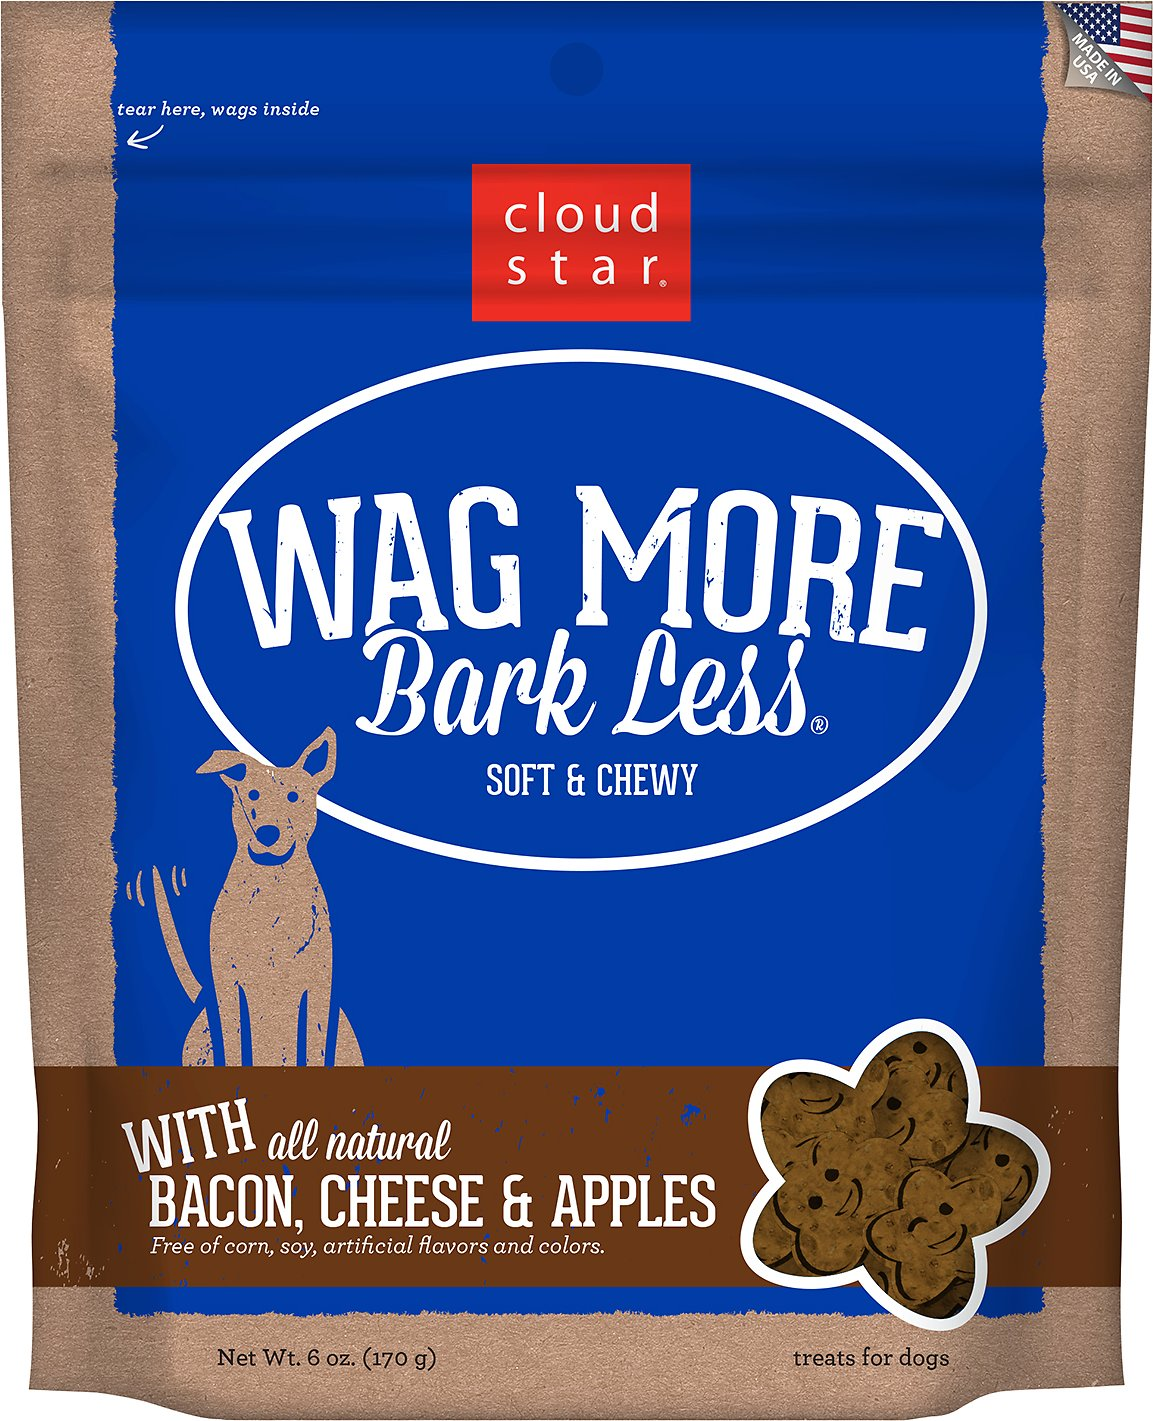 Cloud Star Wag More Bark Less Soft & Chewy with Bacon, Cheese & Apples Dog Treats, 6-oz bag